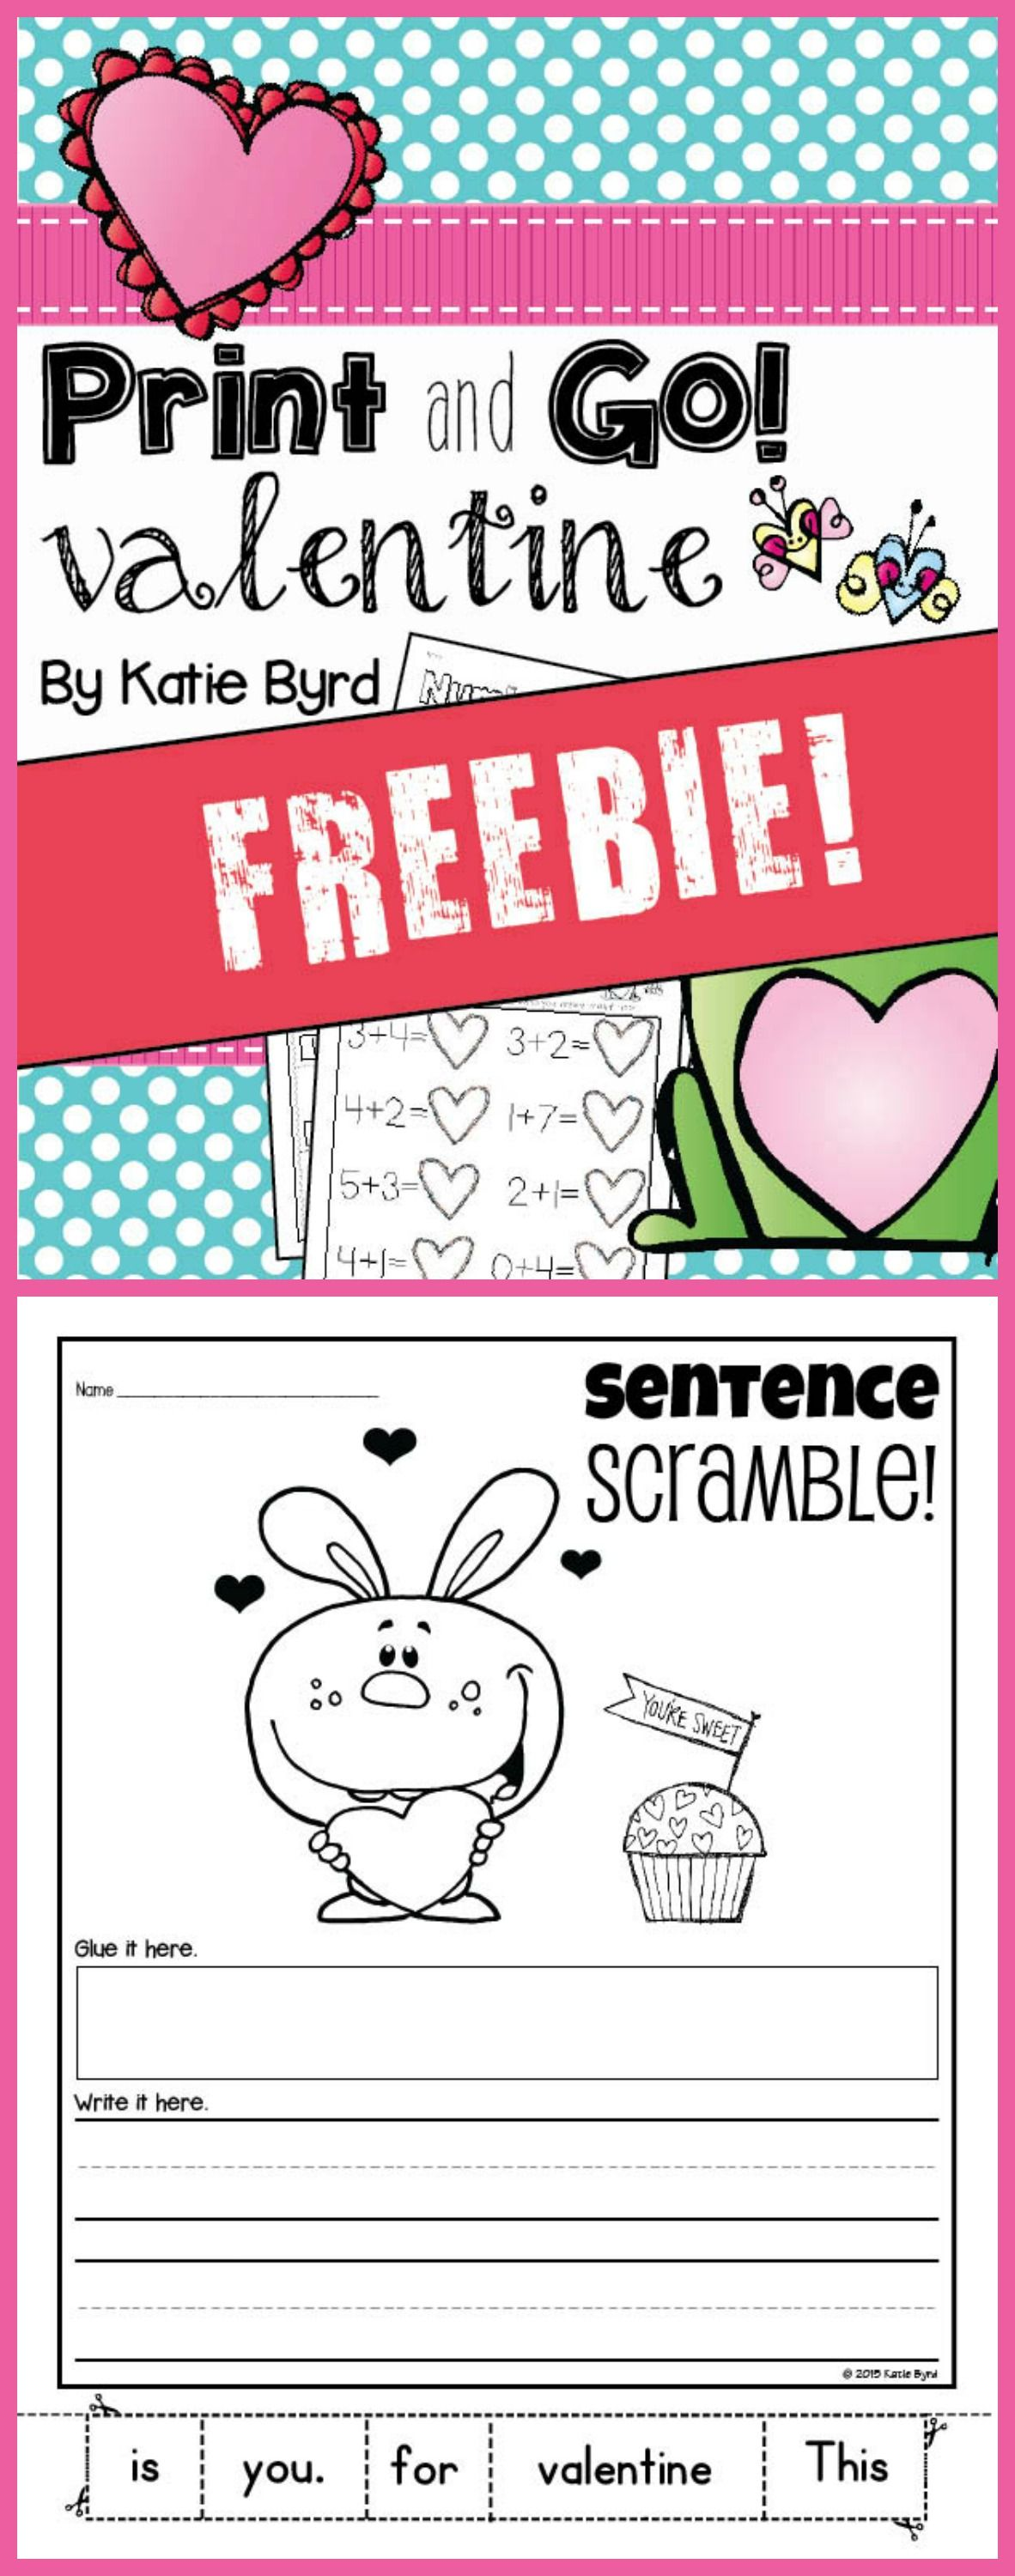 Free Printable Practice Pages For Valentine Fun In